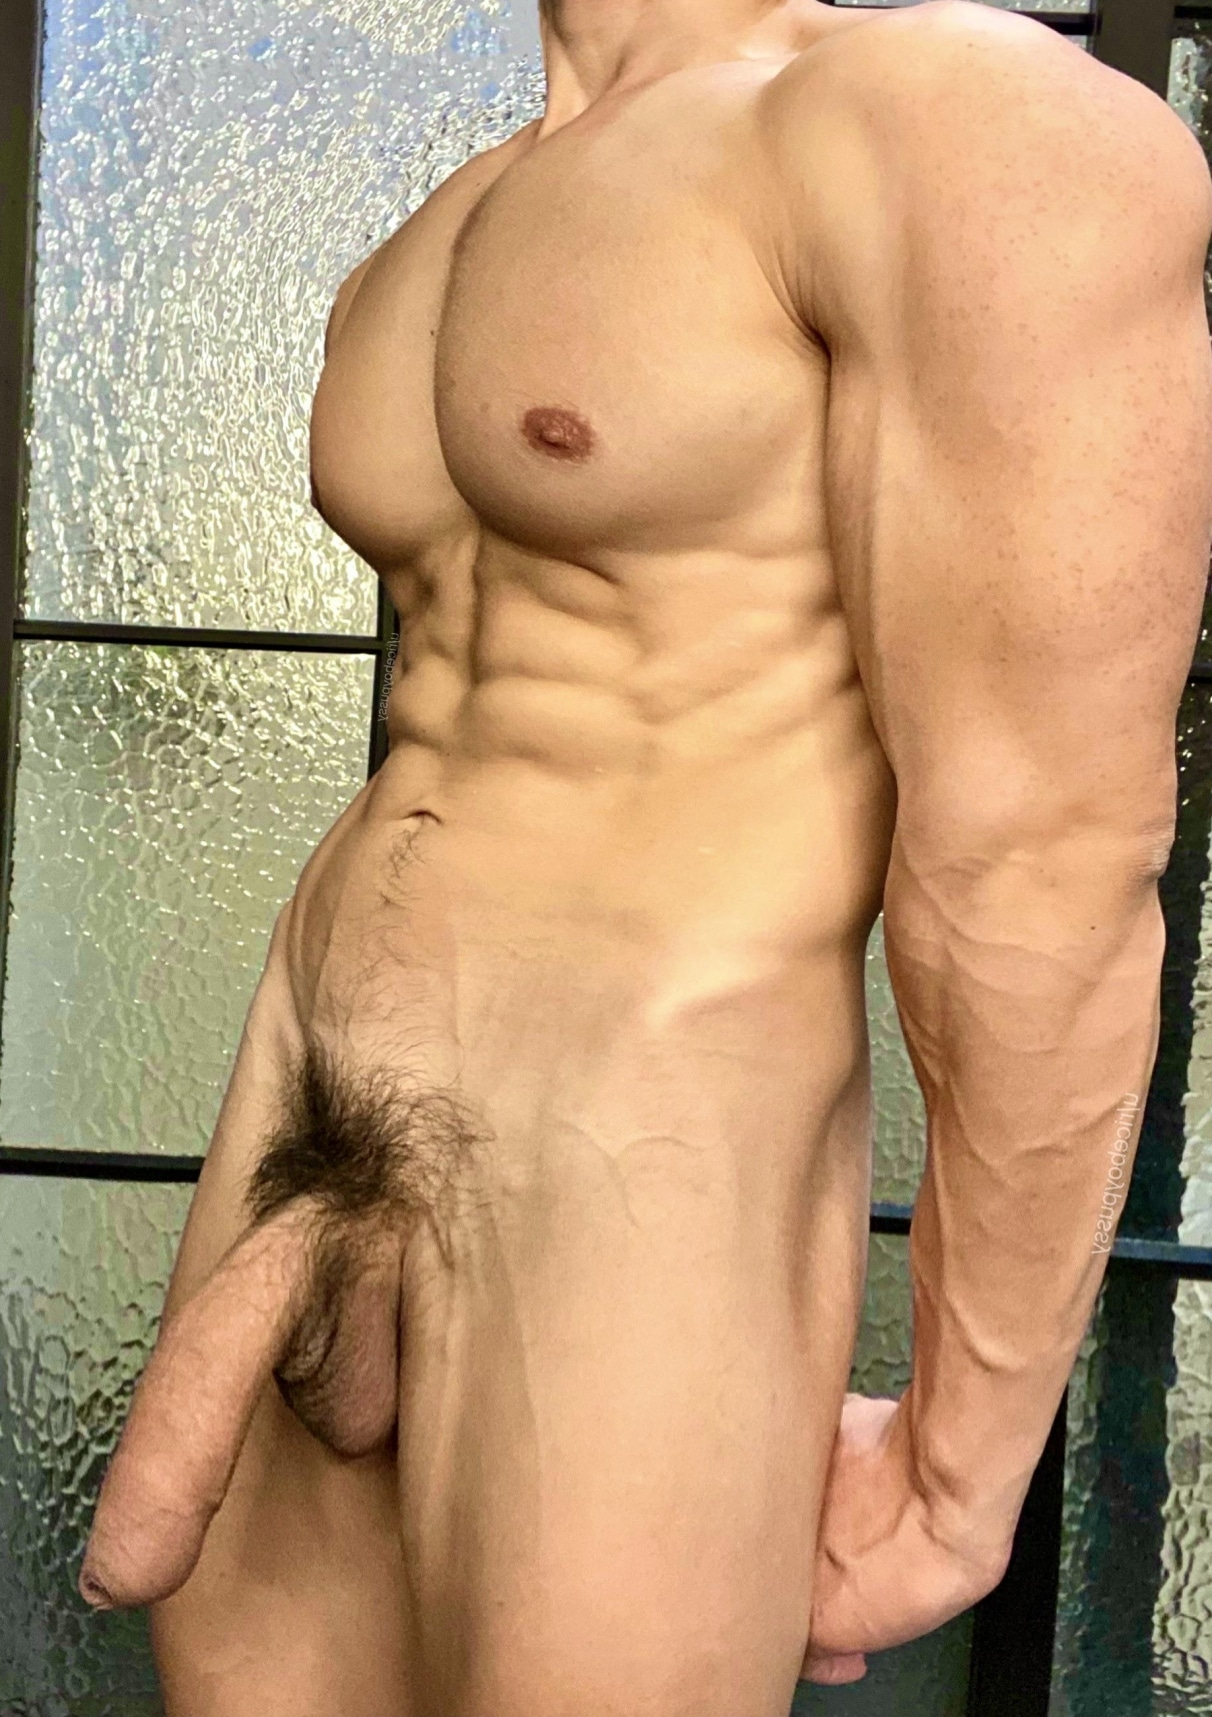 Big muscles and cock